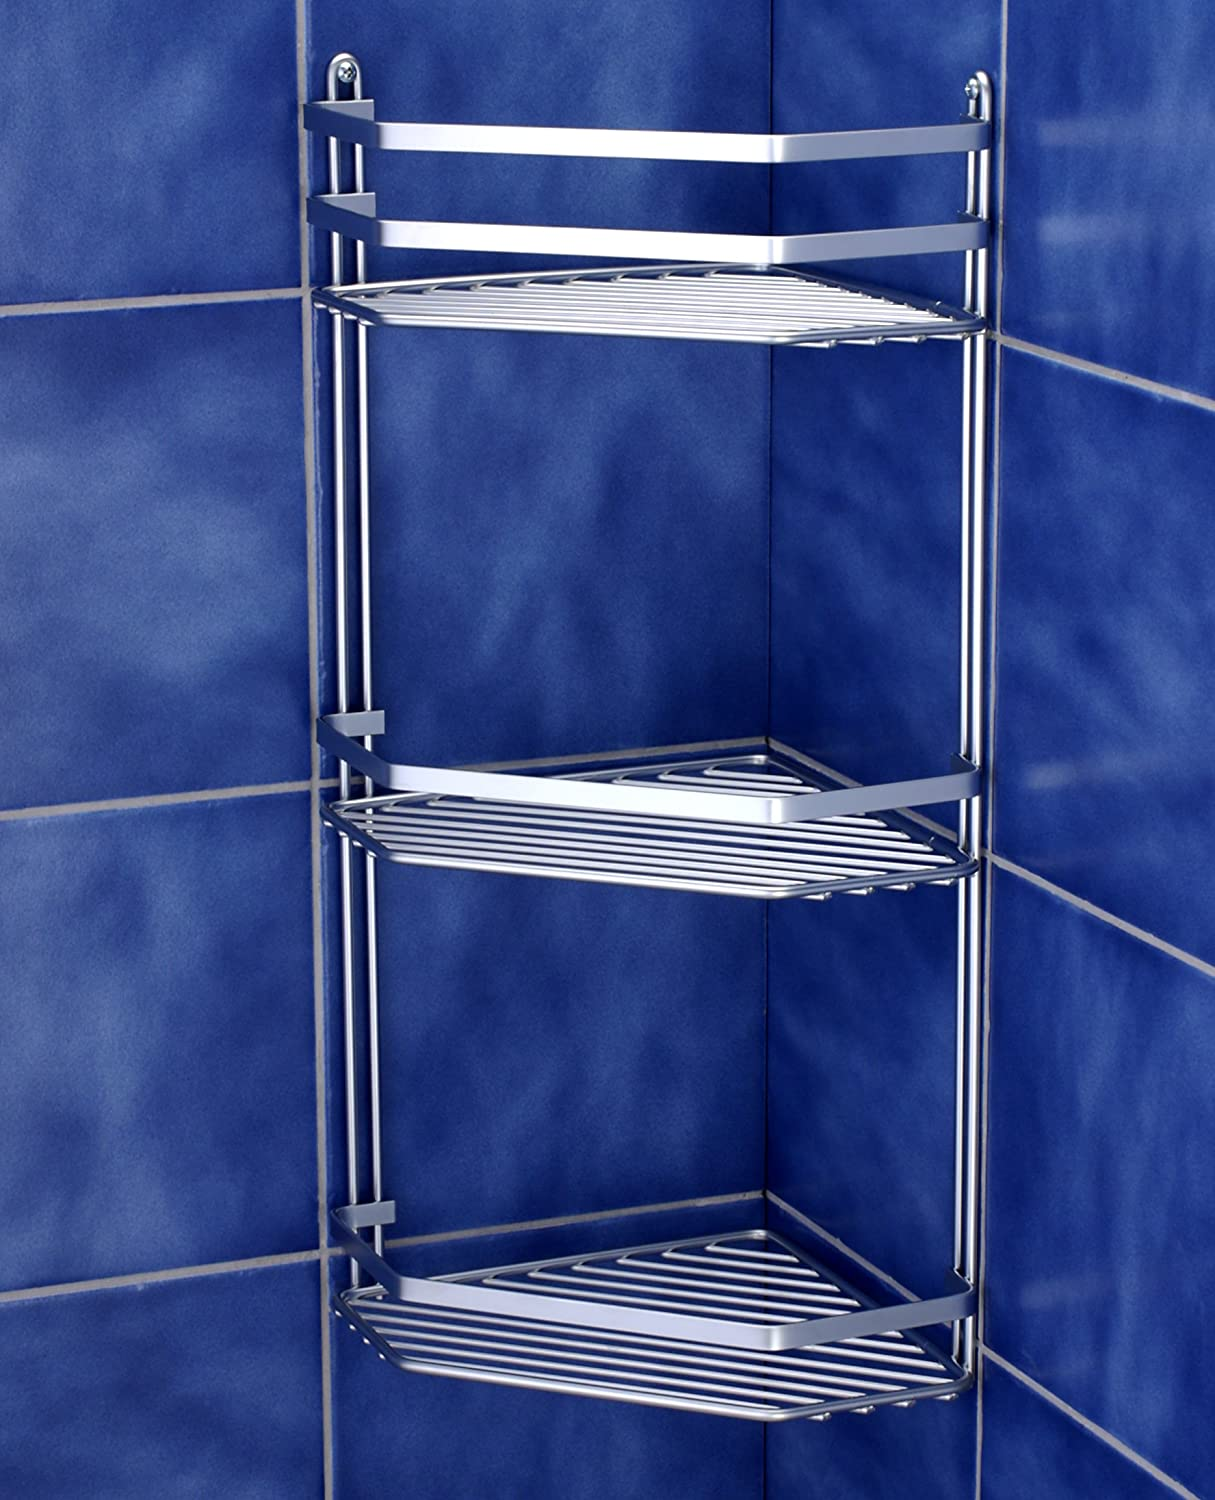 Bathroom Shower Corner Shelves: 3 Tier Shower Bathroom Corner Storage Corner Shelves Shelf